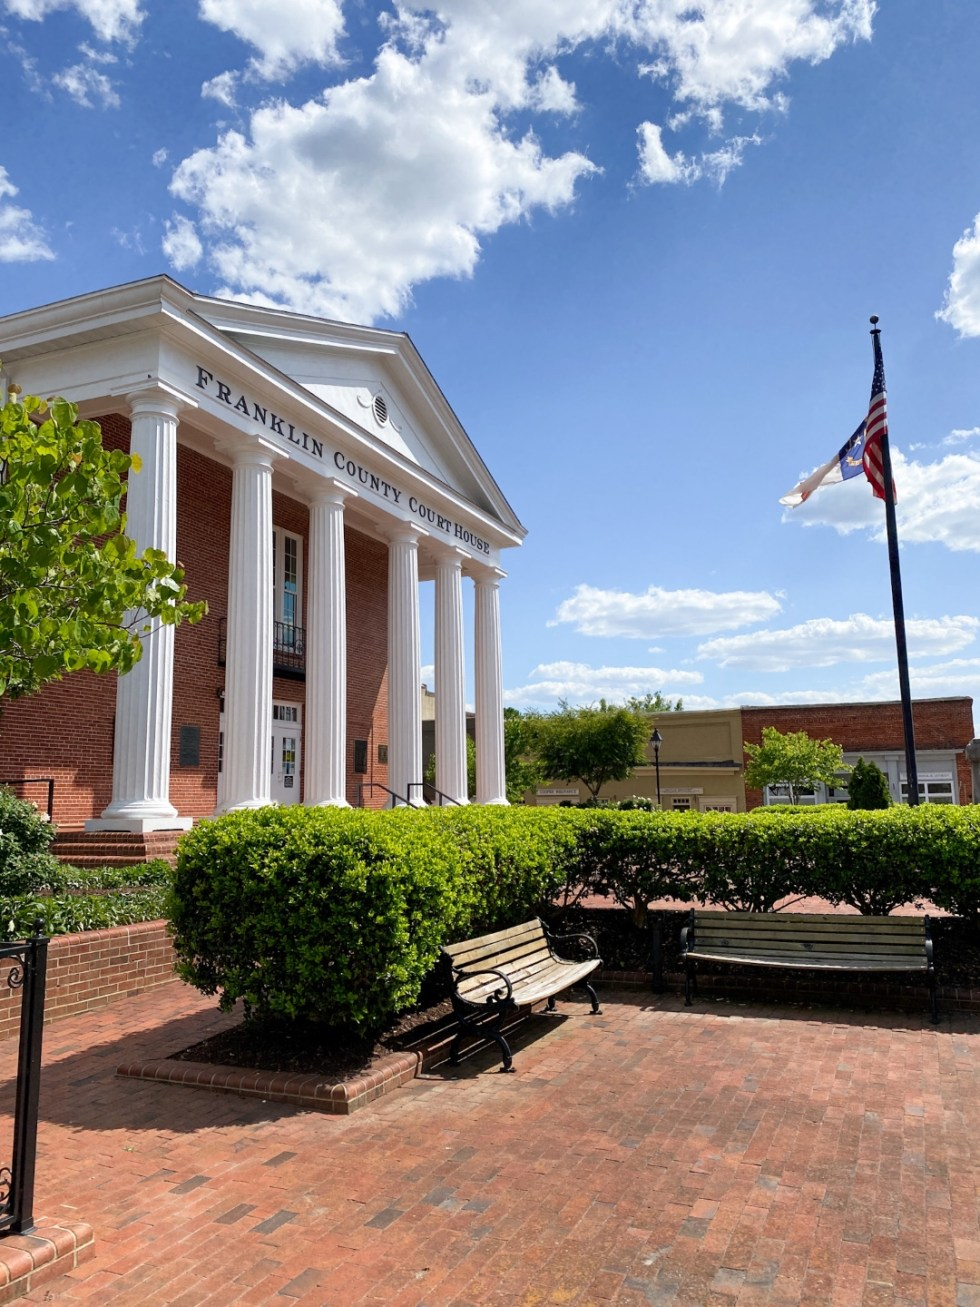 An Afternoon Trip to Franklin County, NC - I'm Fixin' To - @imfixintoblog | Franklin County NC by popular North Carolina travel blog, I'm Fixin' To: image of Franklin county courthouse.